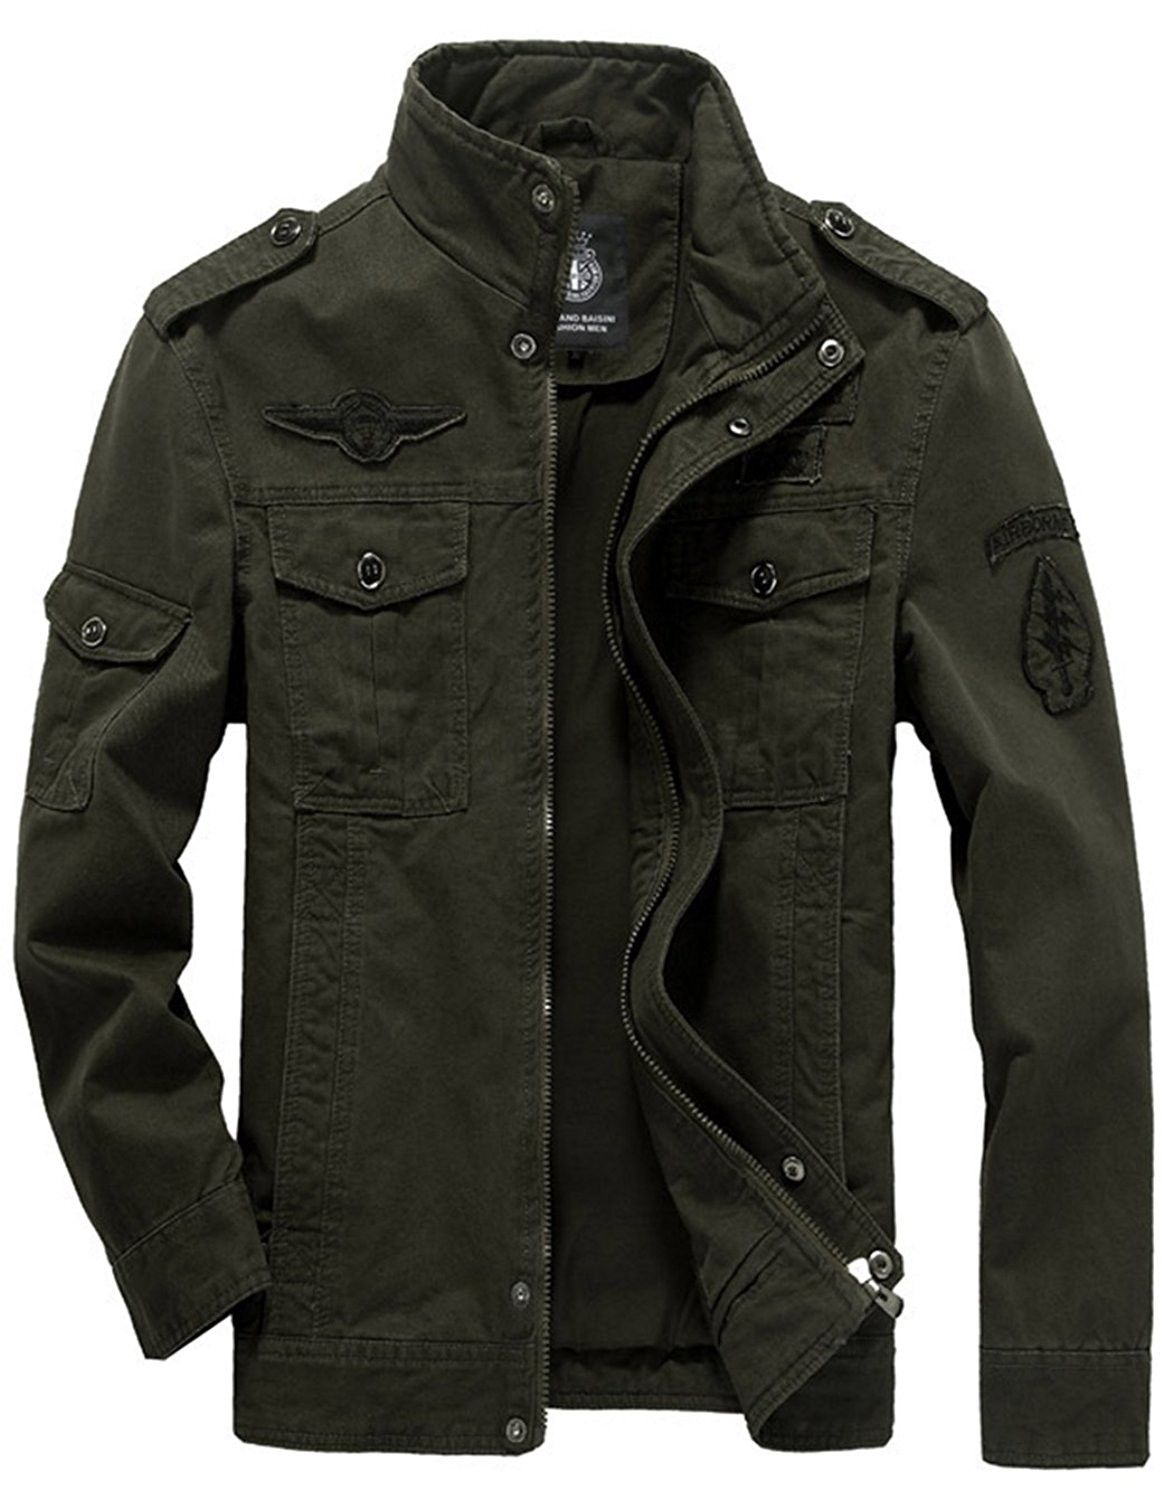 Men's Cotton Lightweight Military Casual Jacket